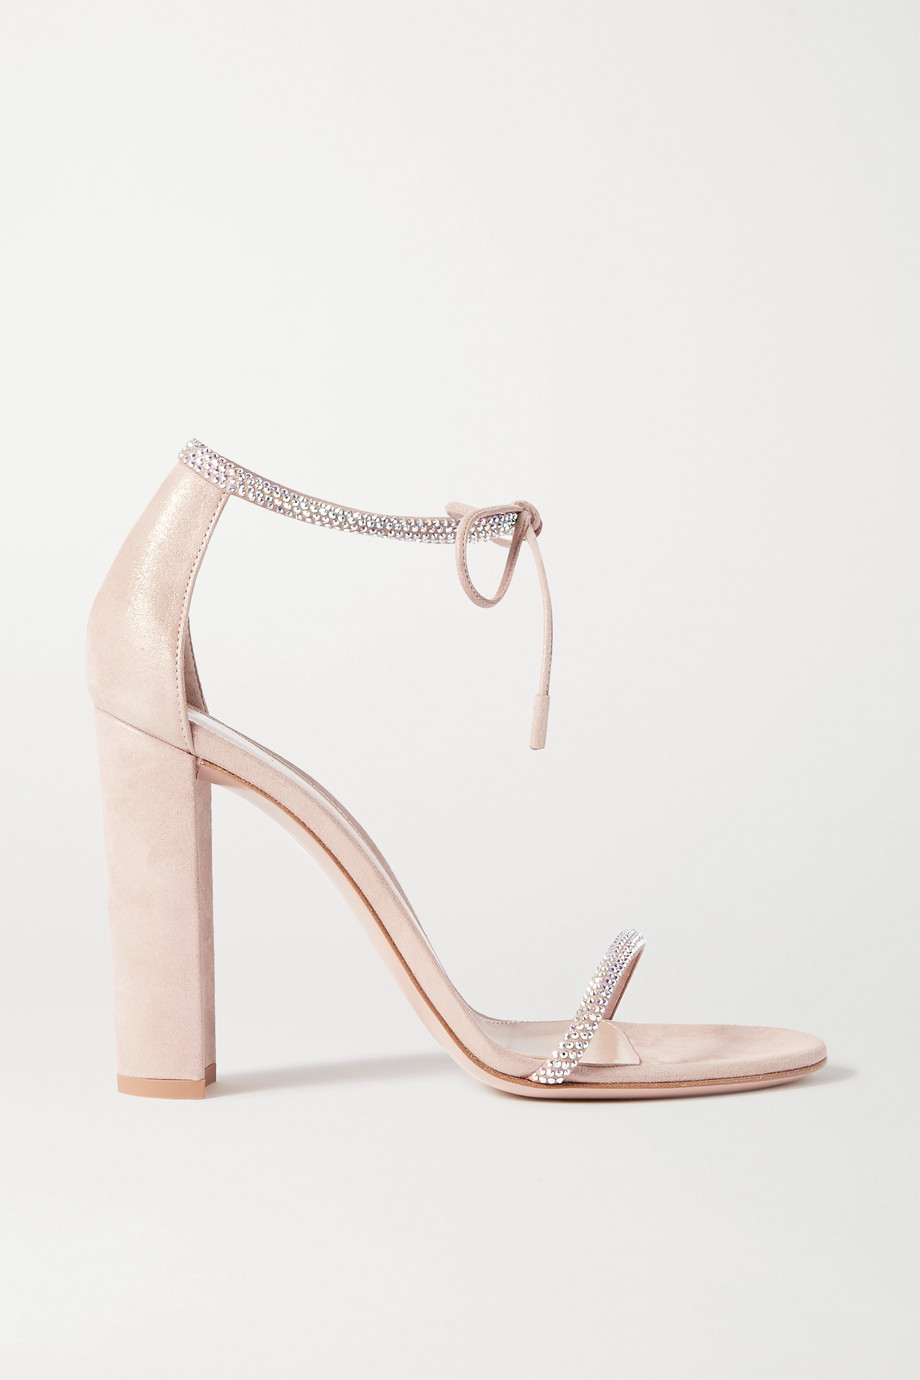 Gianvito Rossi 105 crystal-embellished suede sandals